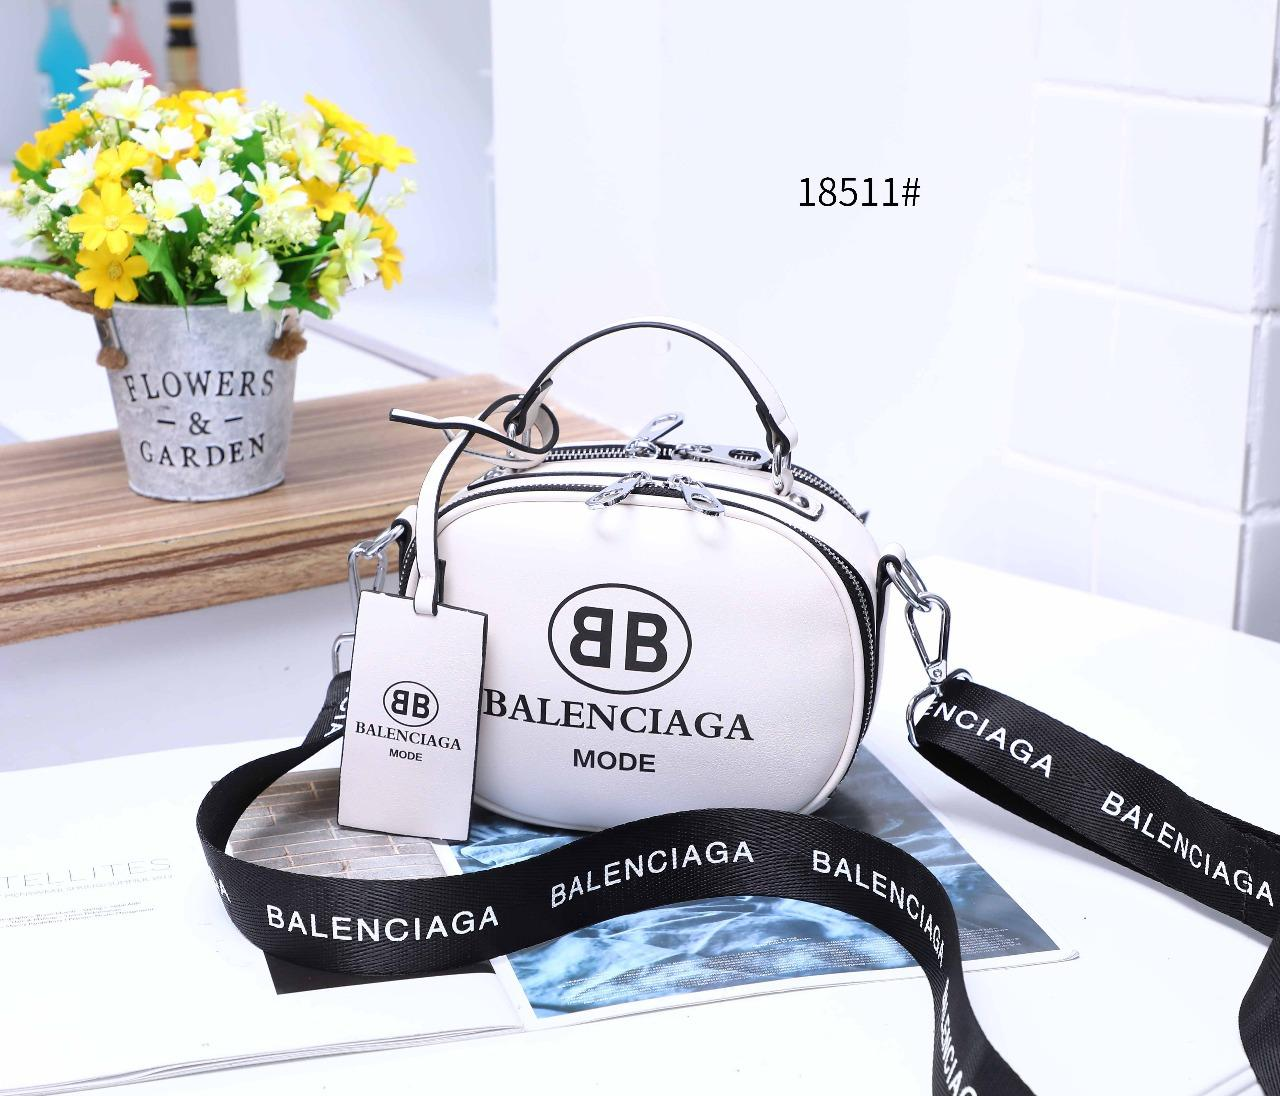 Tas Balenciaga 18511 TAS IMPORT BRANDED BERKUALITAS IMPORT BAG